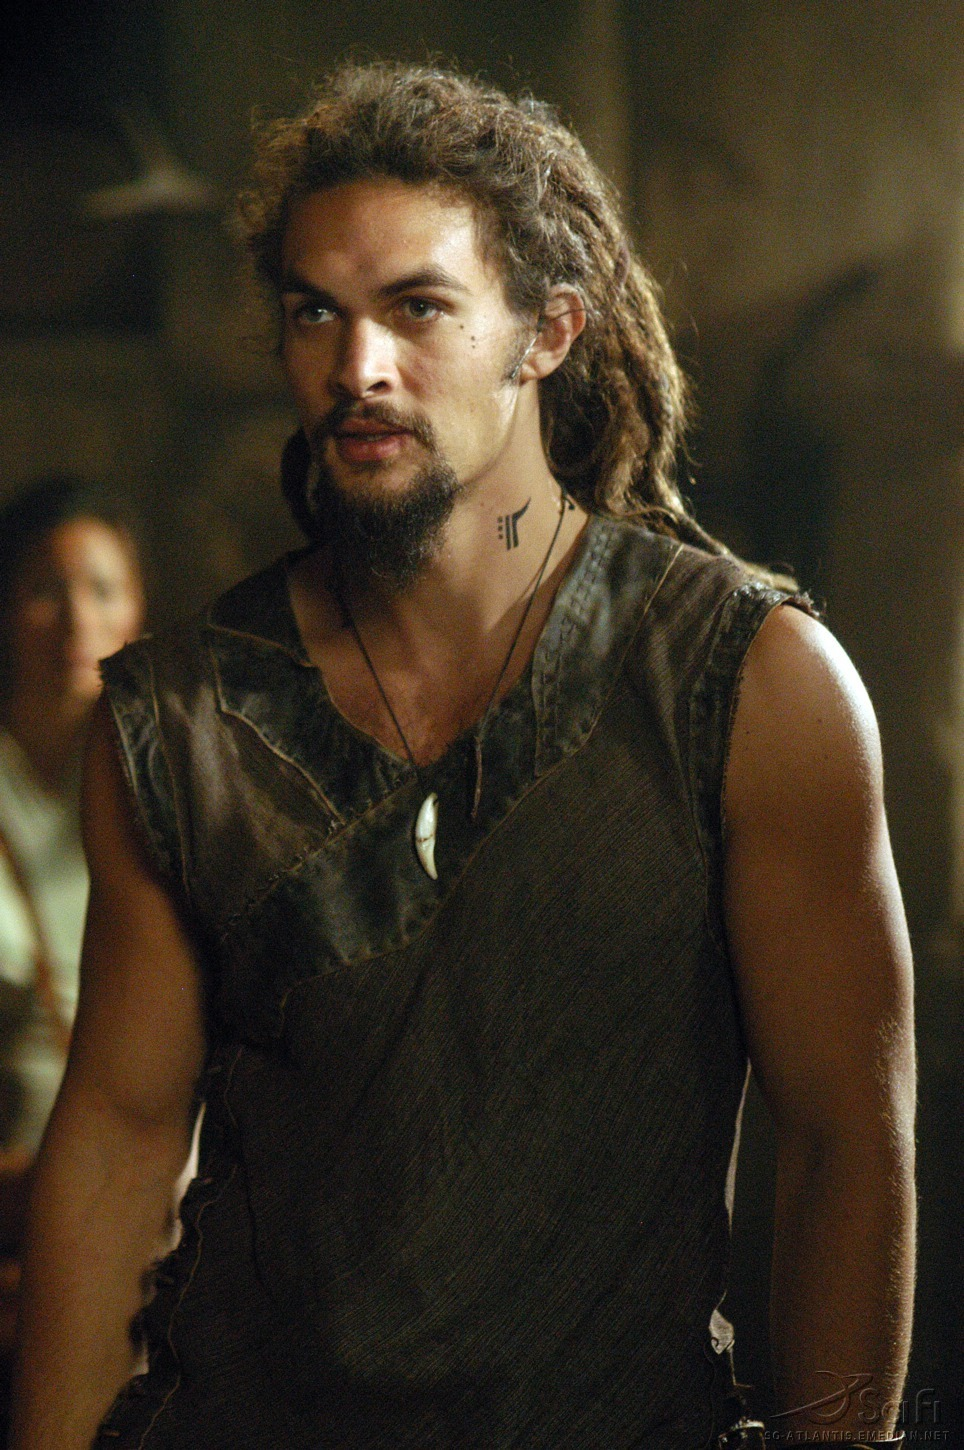 Guys Of Stargate Images Ronon Hd Wallpaper And Background